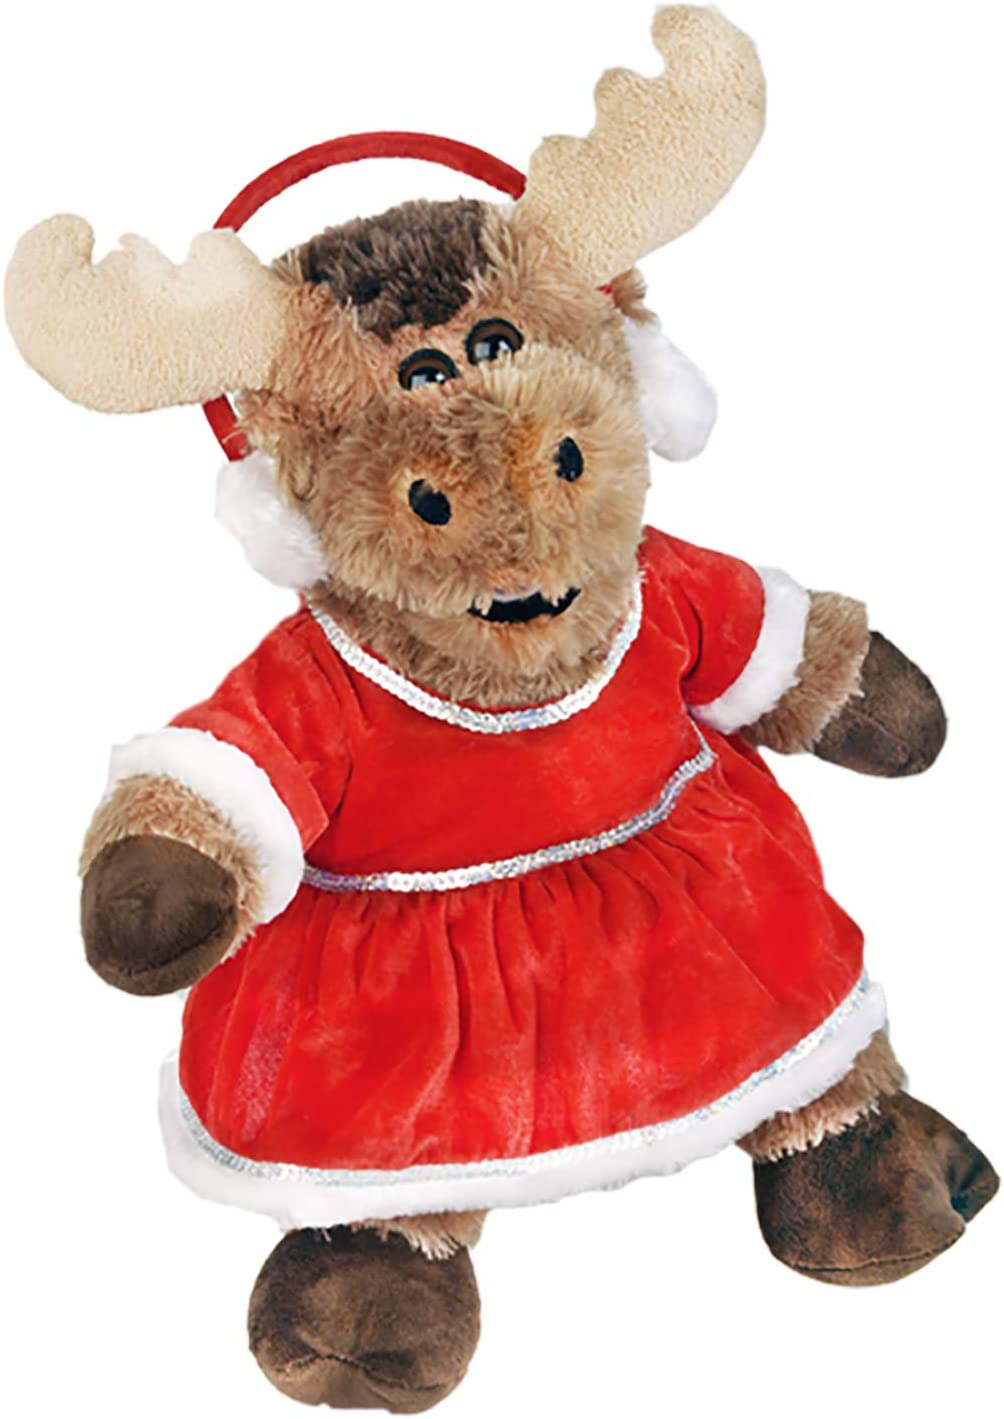 Red Winter Wonderland Outfit Teddy Bear Clothes Fits Most 14-18 Build-A-Bear and Make Your Own Stuffed Animals Teddy Mountain 2123